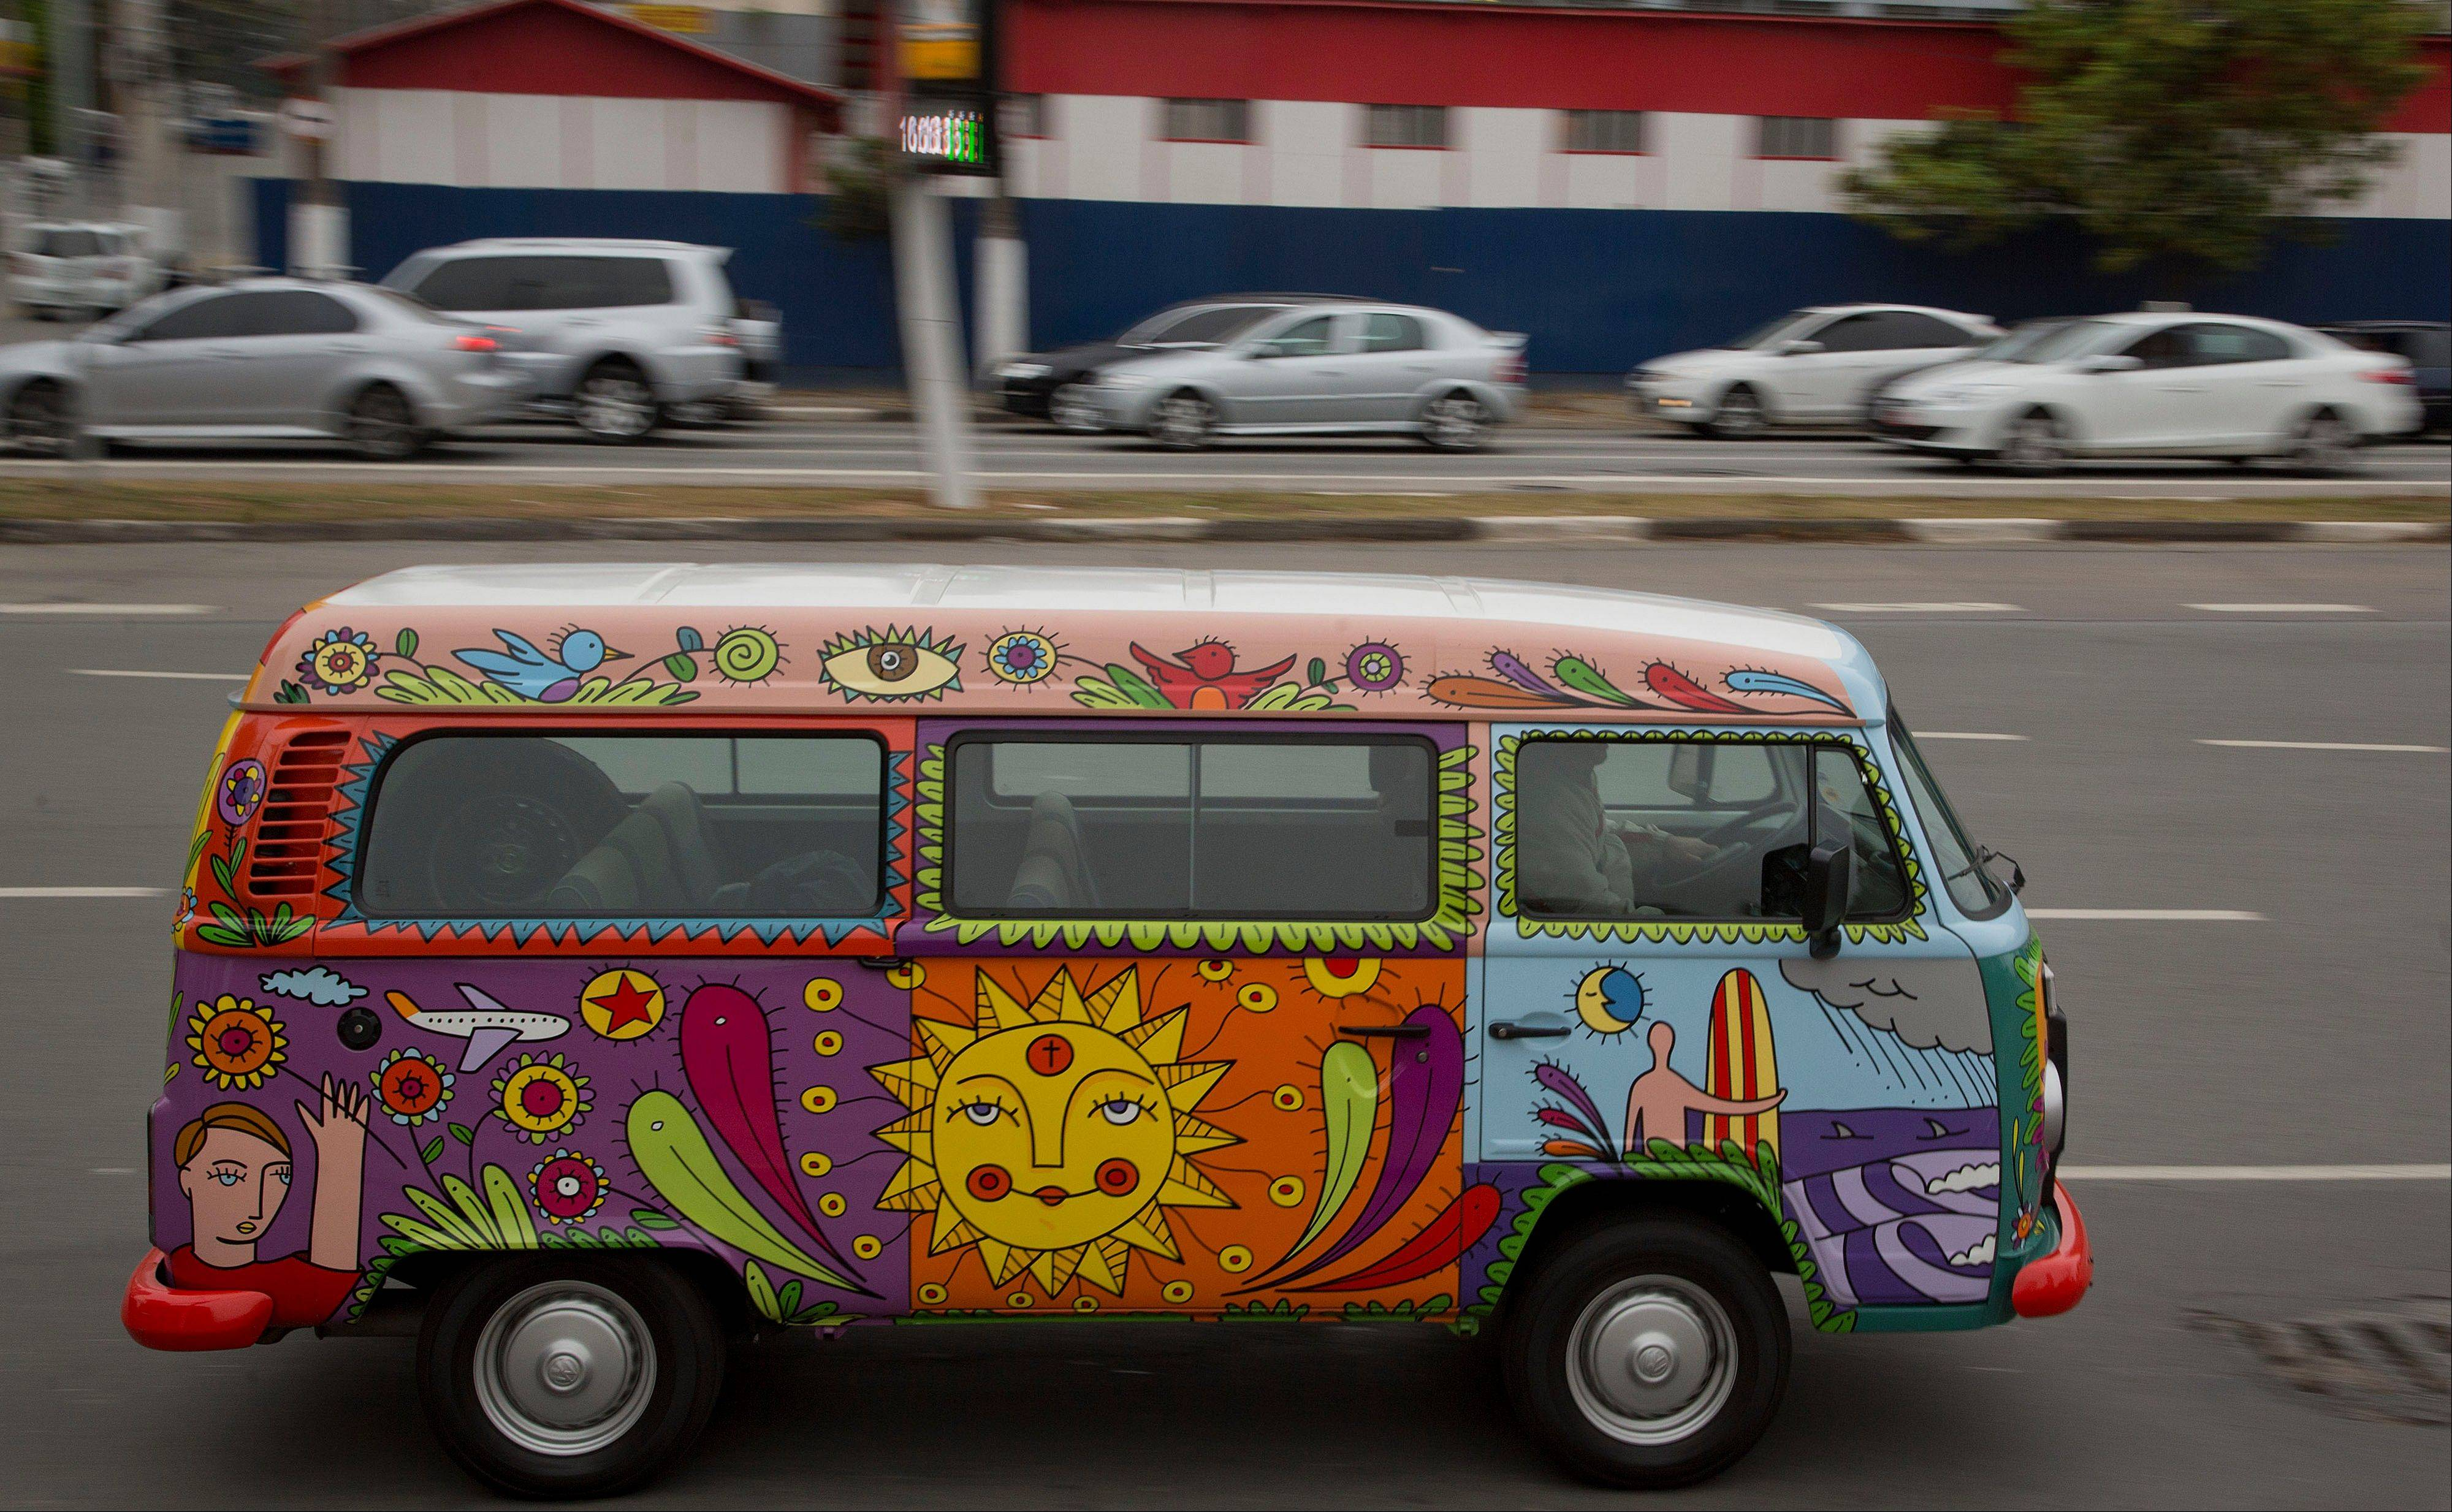 Advertising executive Marcelo Serpa drives his Volkswagen van, or Kombi, emblazoned with a �rolling mural,� that he painted, through the streets of Sao Paulo, Brazil. Serpa�s 2007 VW van version is meant to have a 1960s American hippie feel. He painted it in bright green, yellow, blue and red colors with cartoonlike drawings of his wife, daughters, and himself, surfboard in hand. Serpa said the bus evokes �a spirit of playfulness and happiness,� causing people to pause and smile when he drives it down Sao Paulo�s chaotic streets.